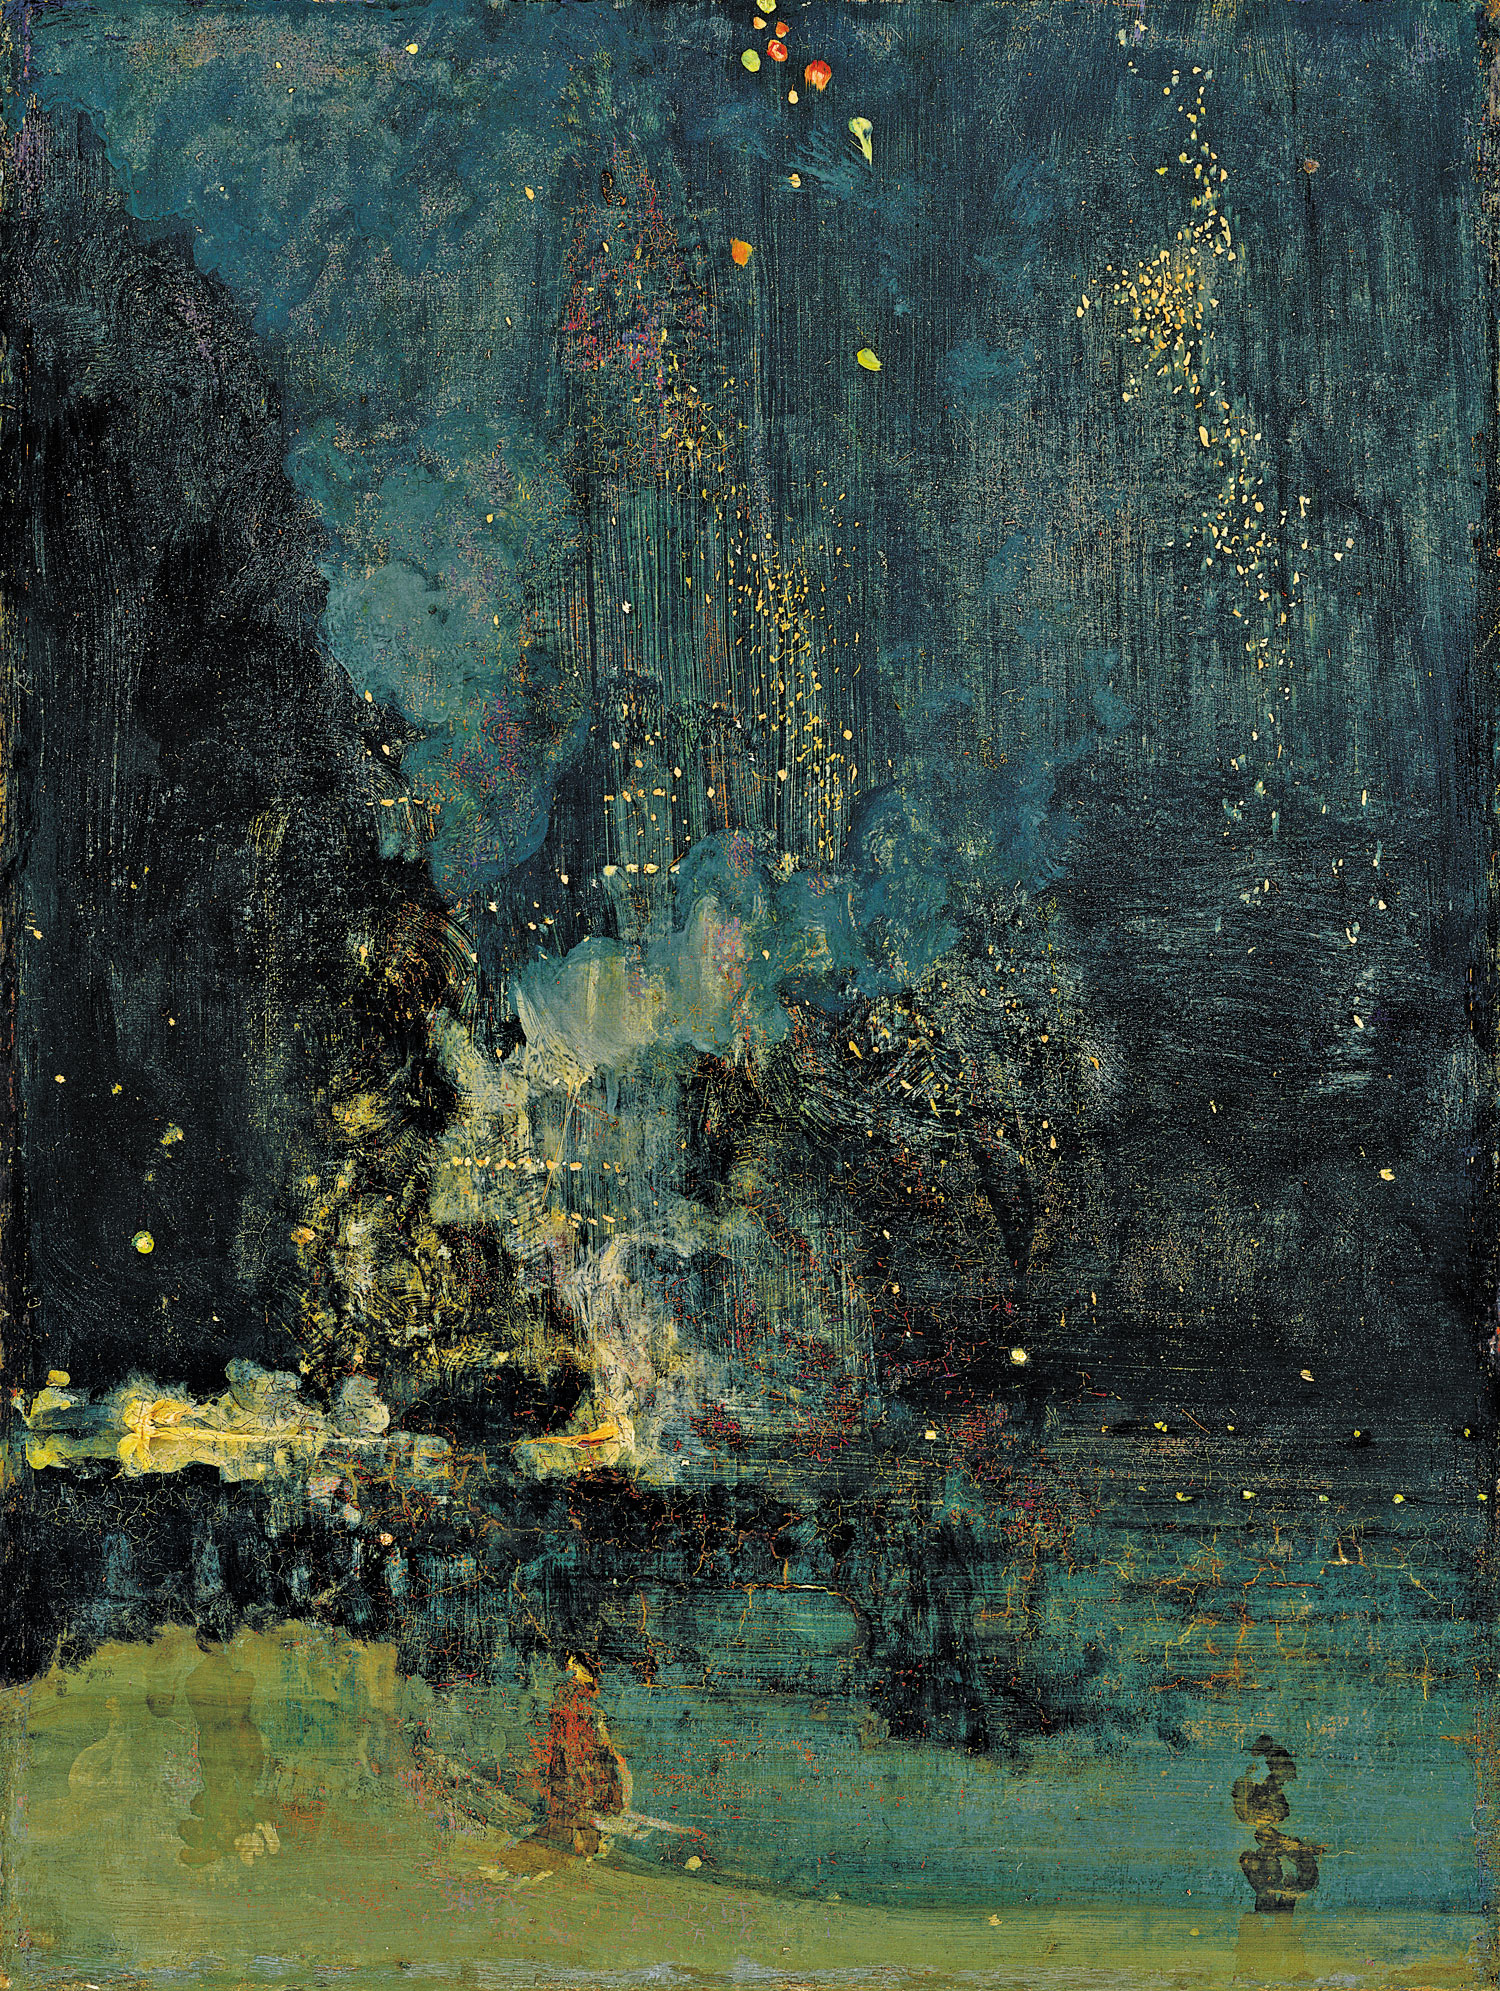 Nocturne-in-Black-and-Gold-The-Falling-Rocket-1875-by-James-McNeill-Whistler